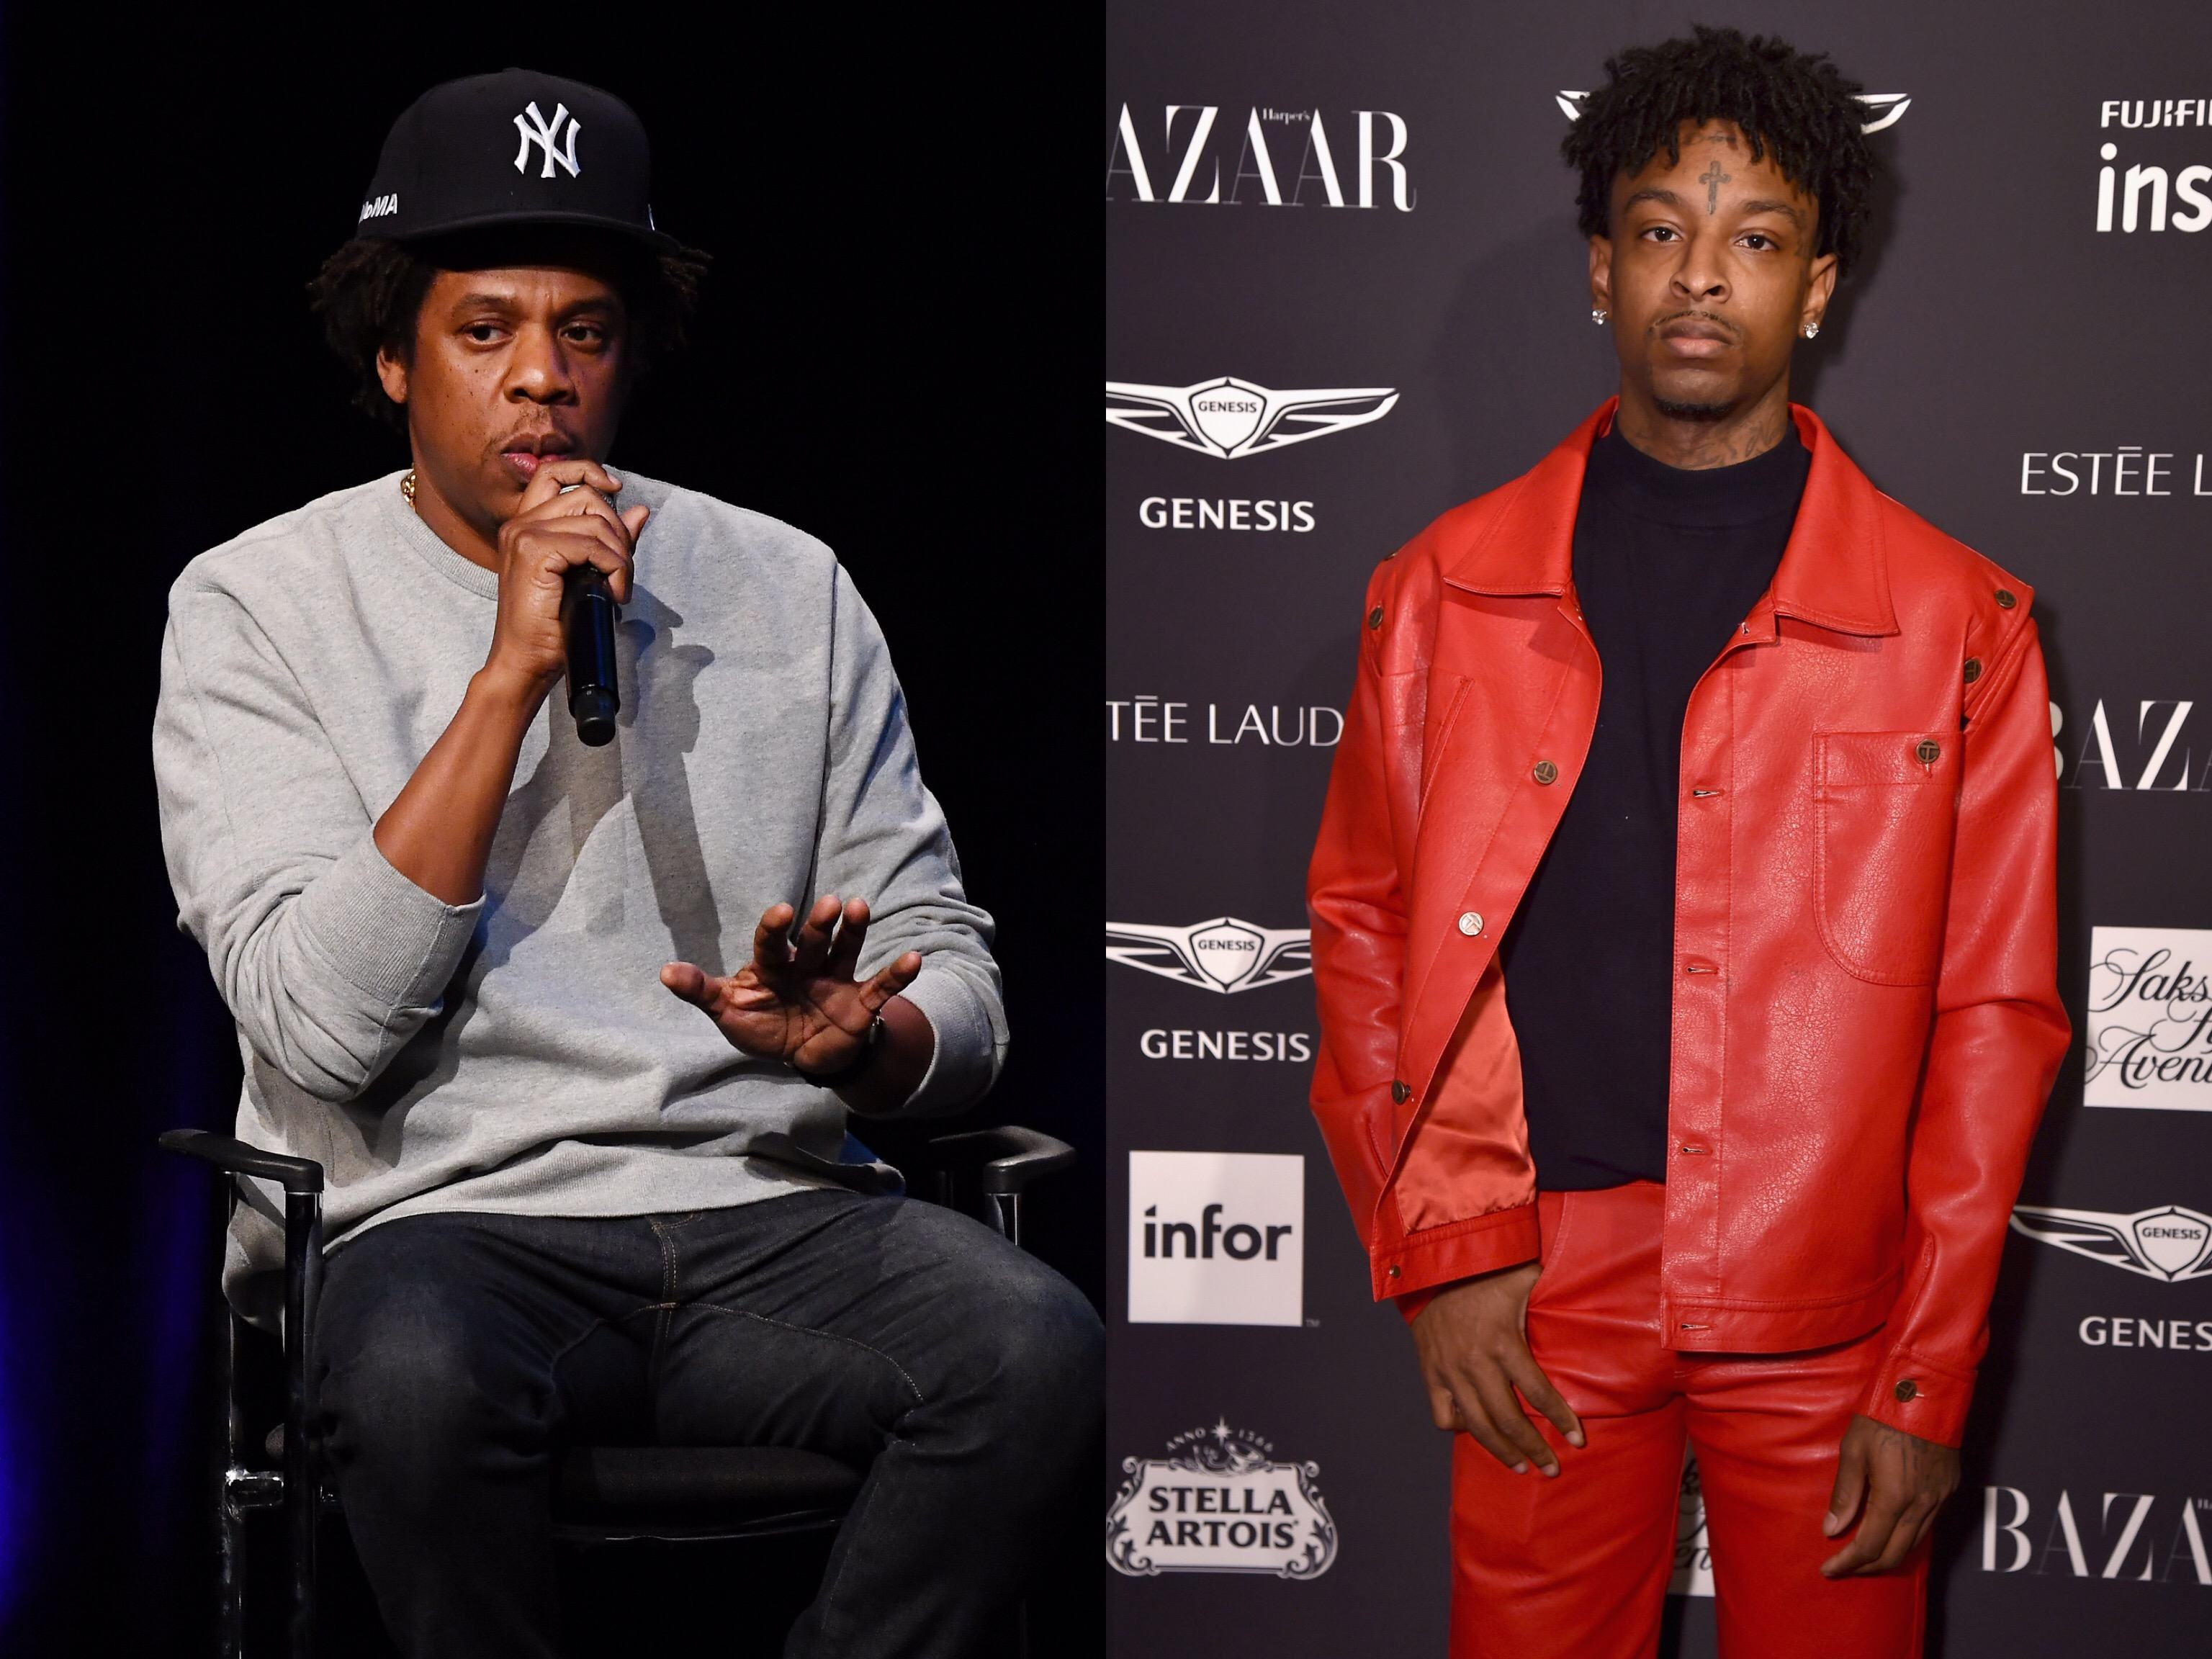 Jay-Z Speaks Out About 21 Savage's Arrest